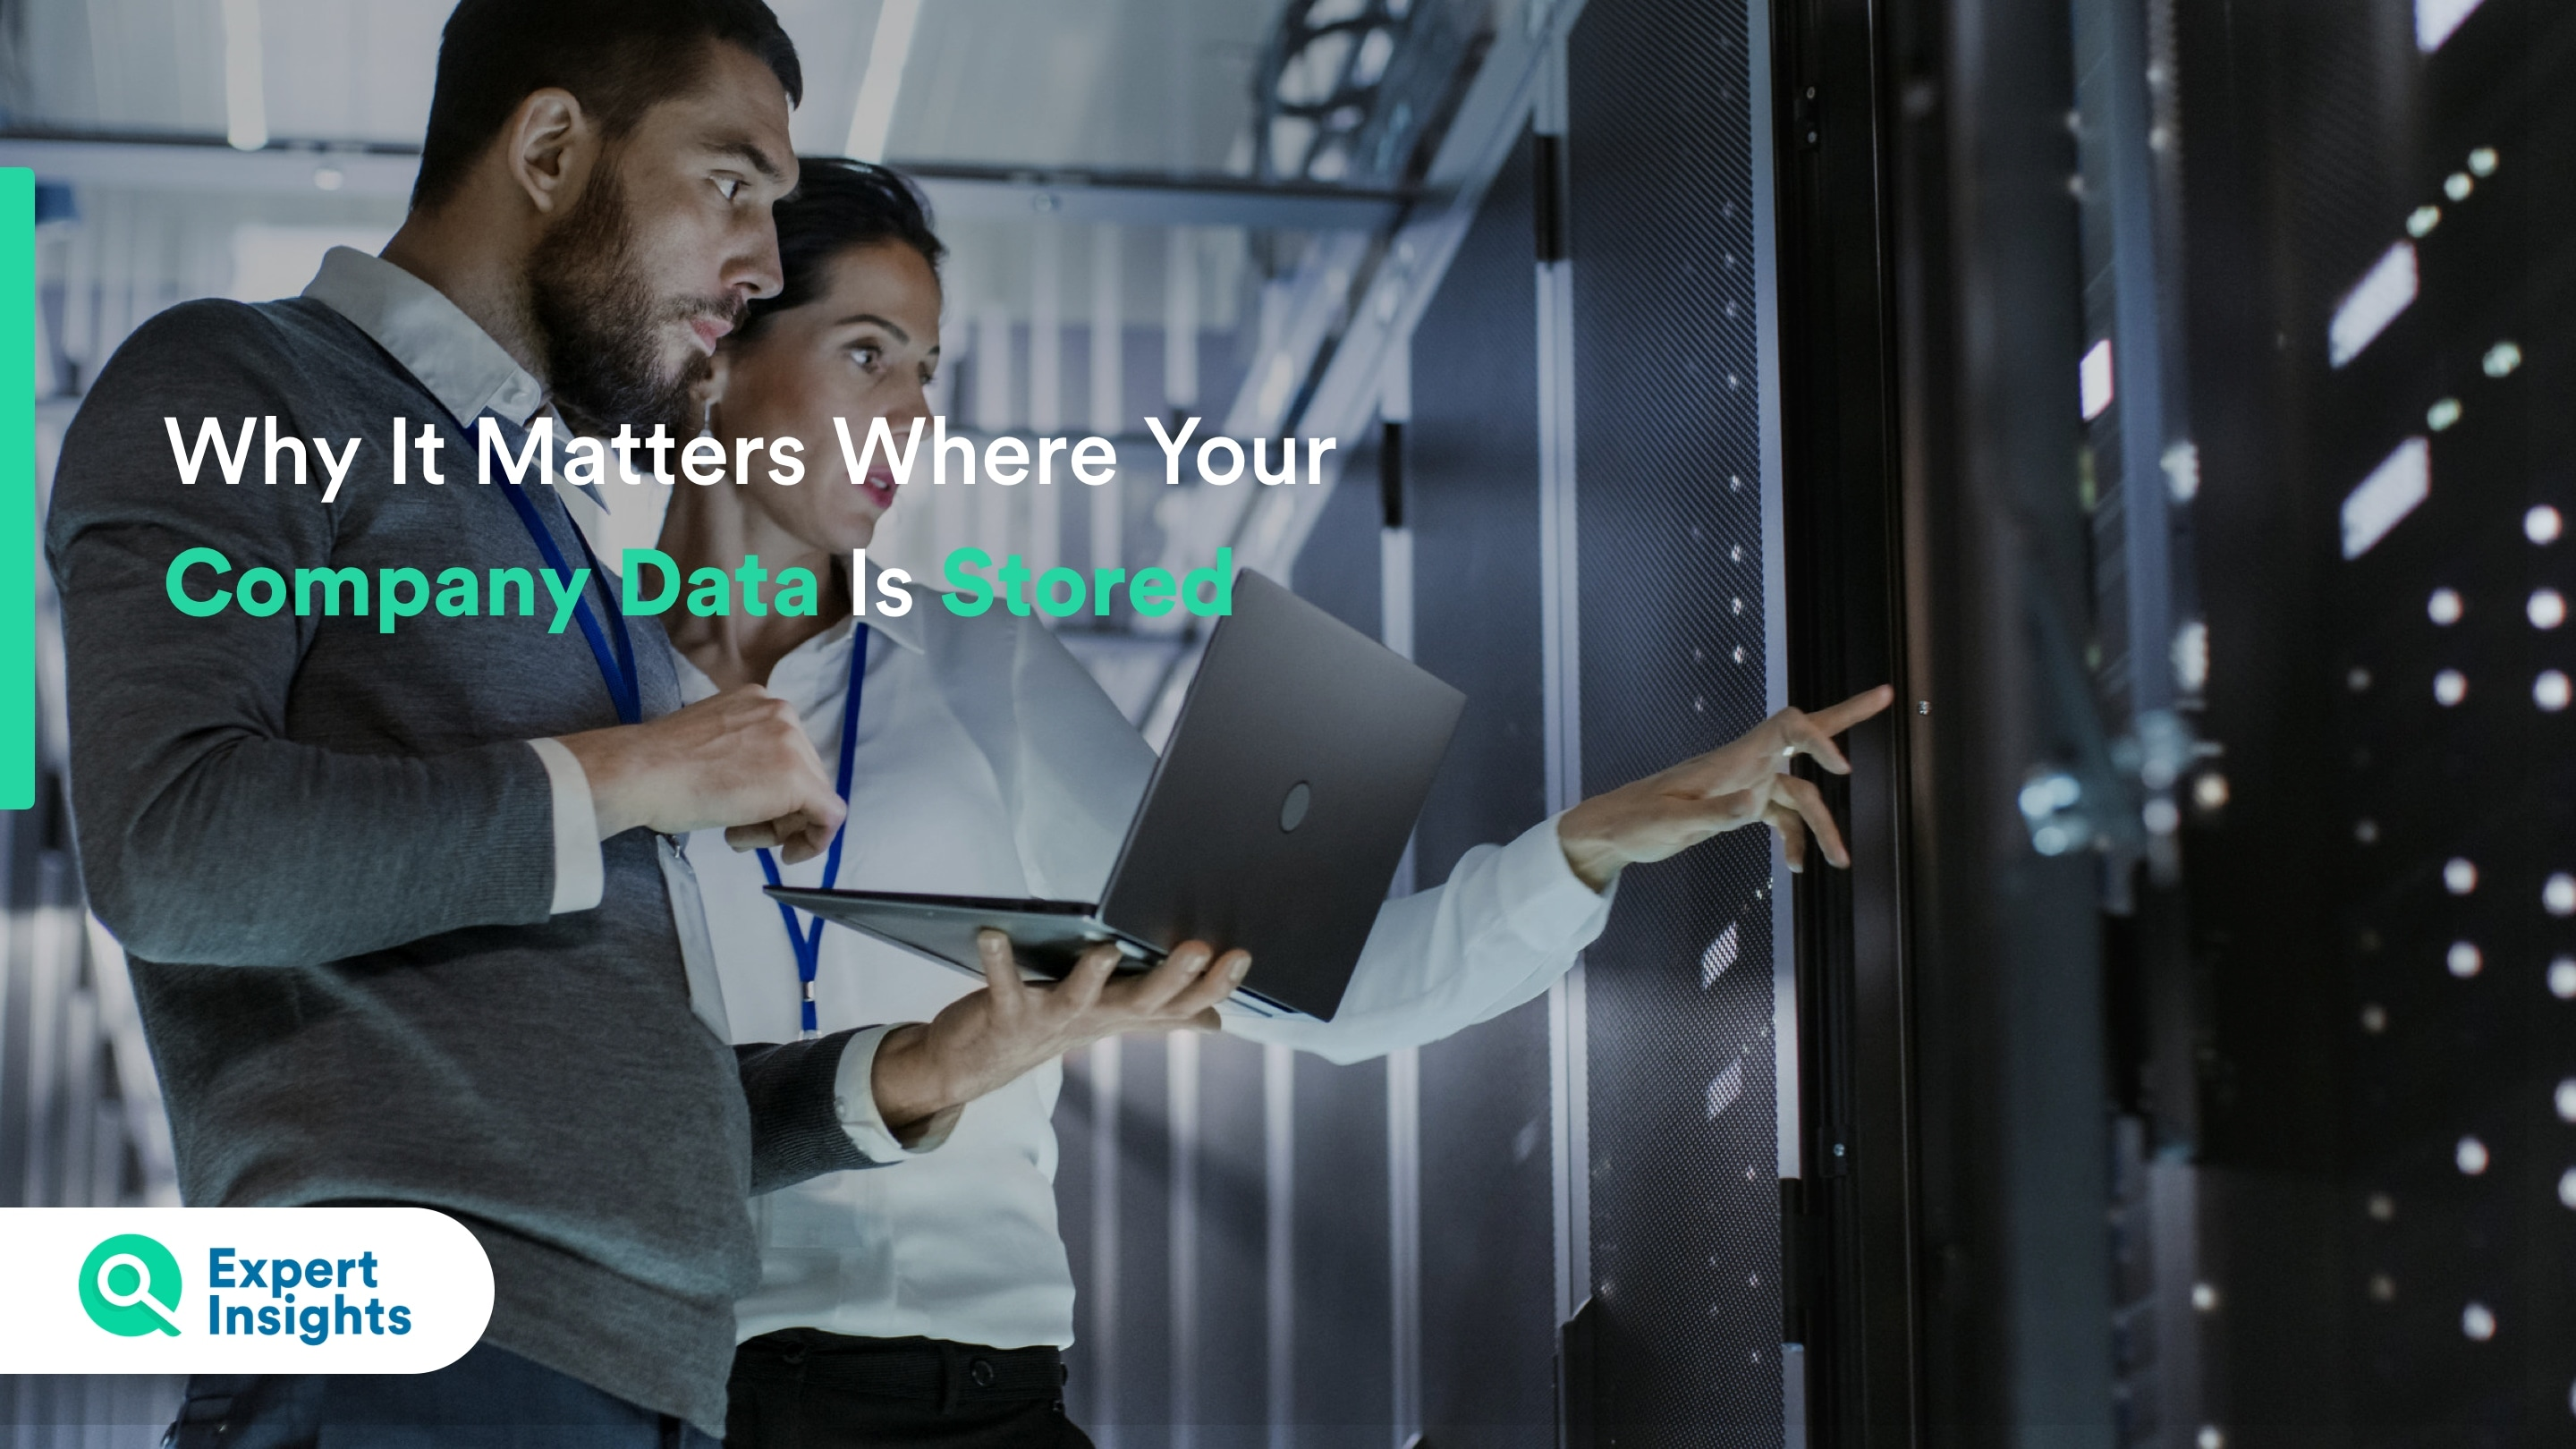 Why it matters where company data is stored - Expert Insights